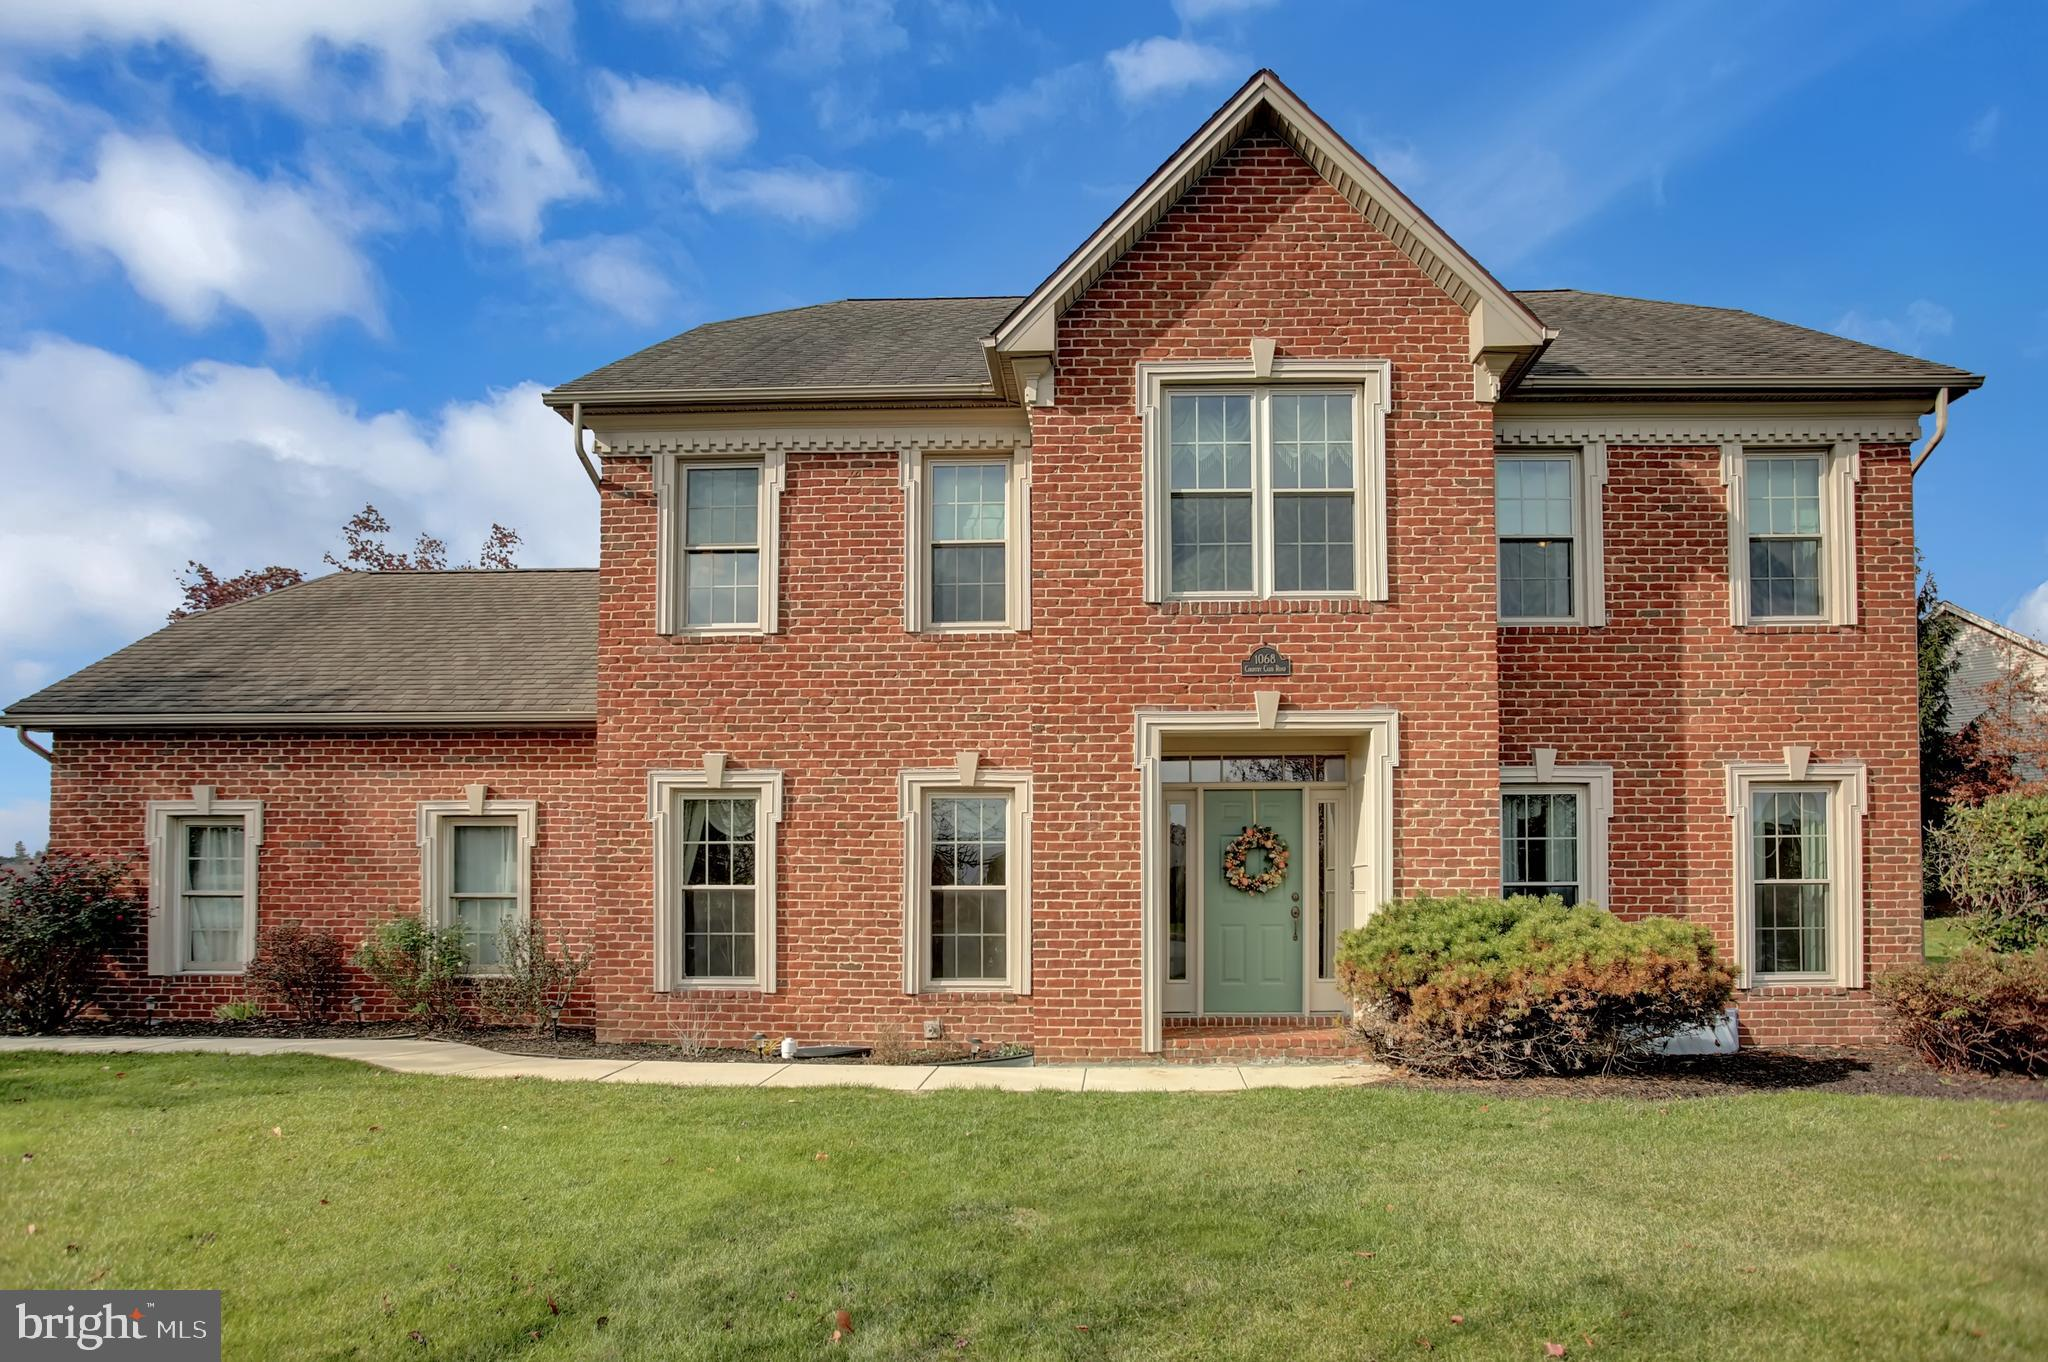 1068 COUNTRY CLUB ROAD, CAMP HILL, PA 17011